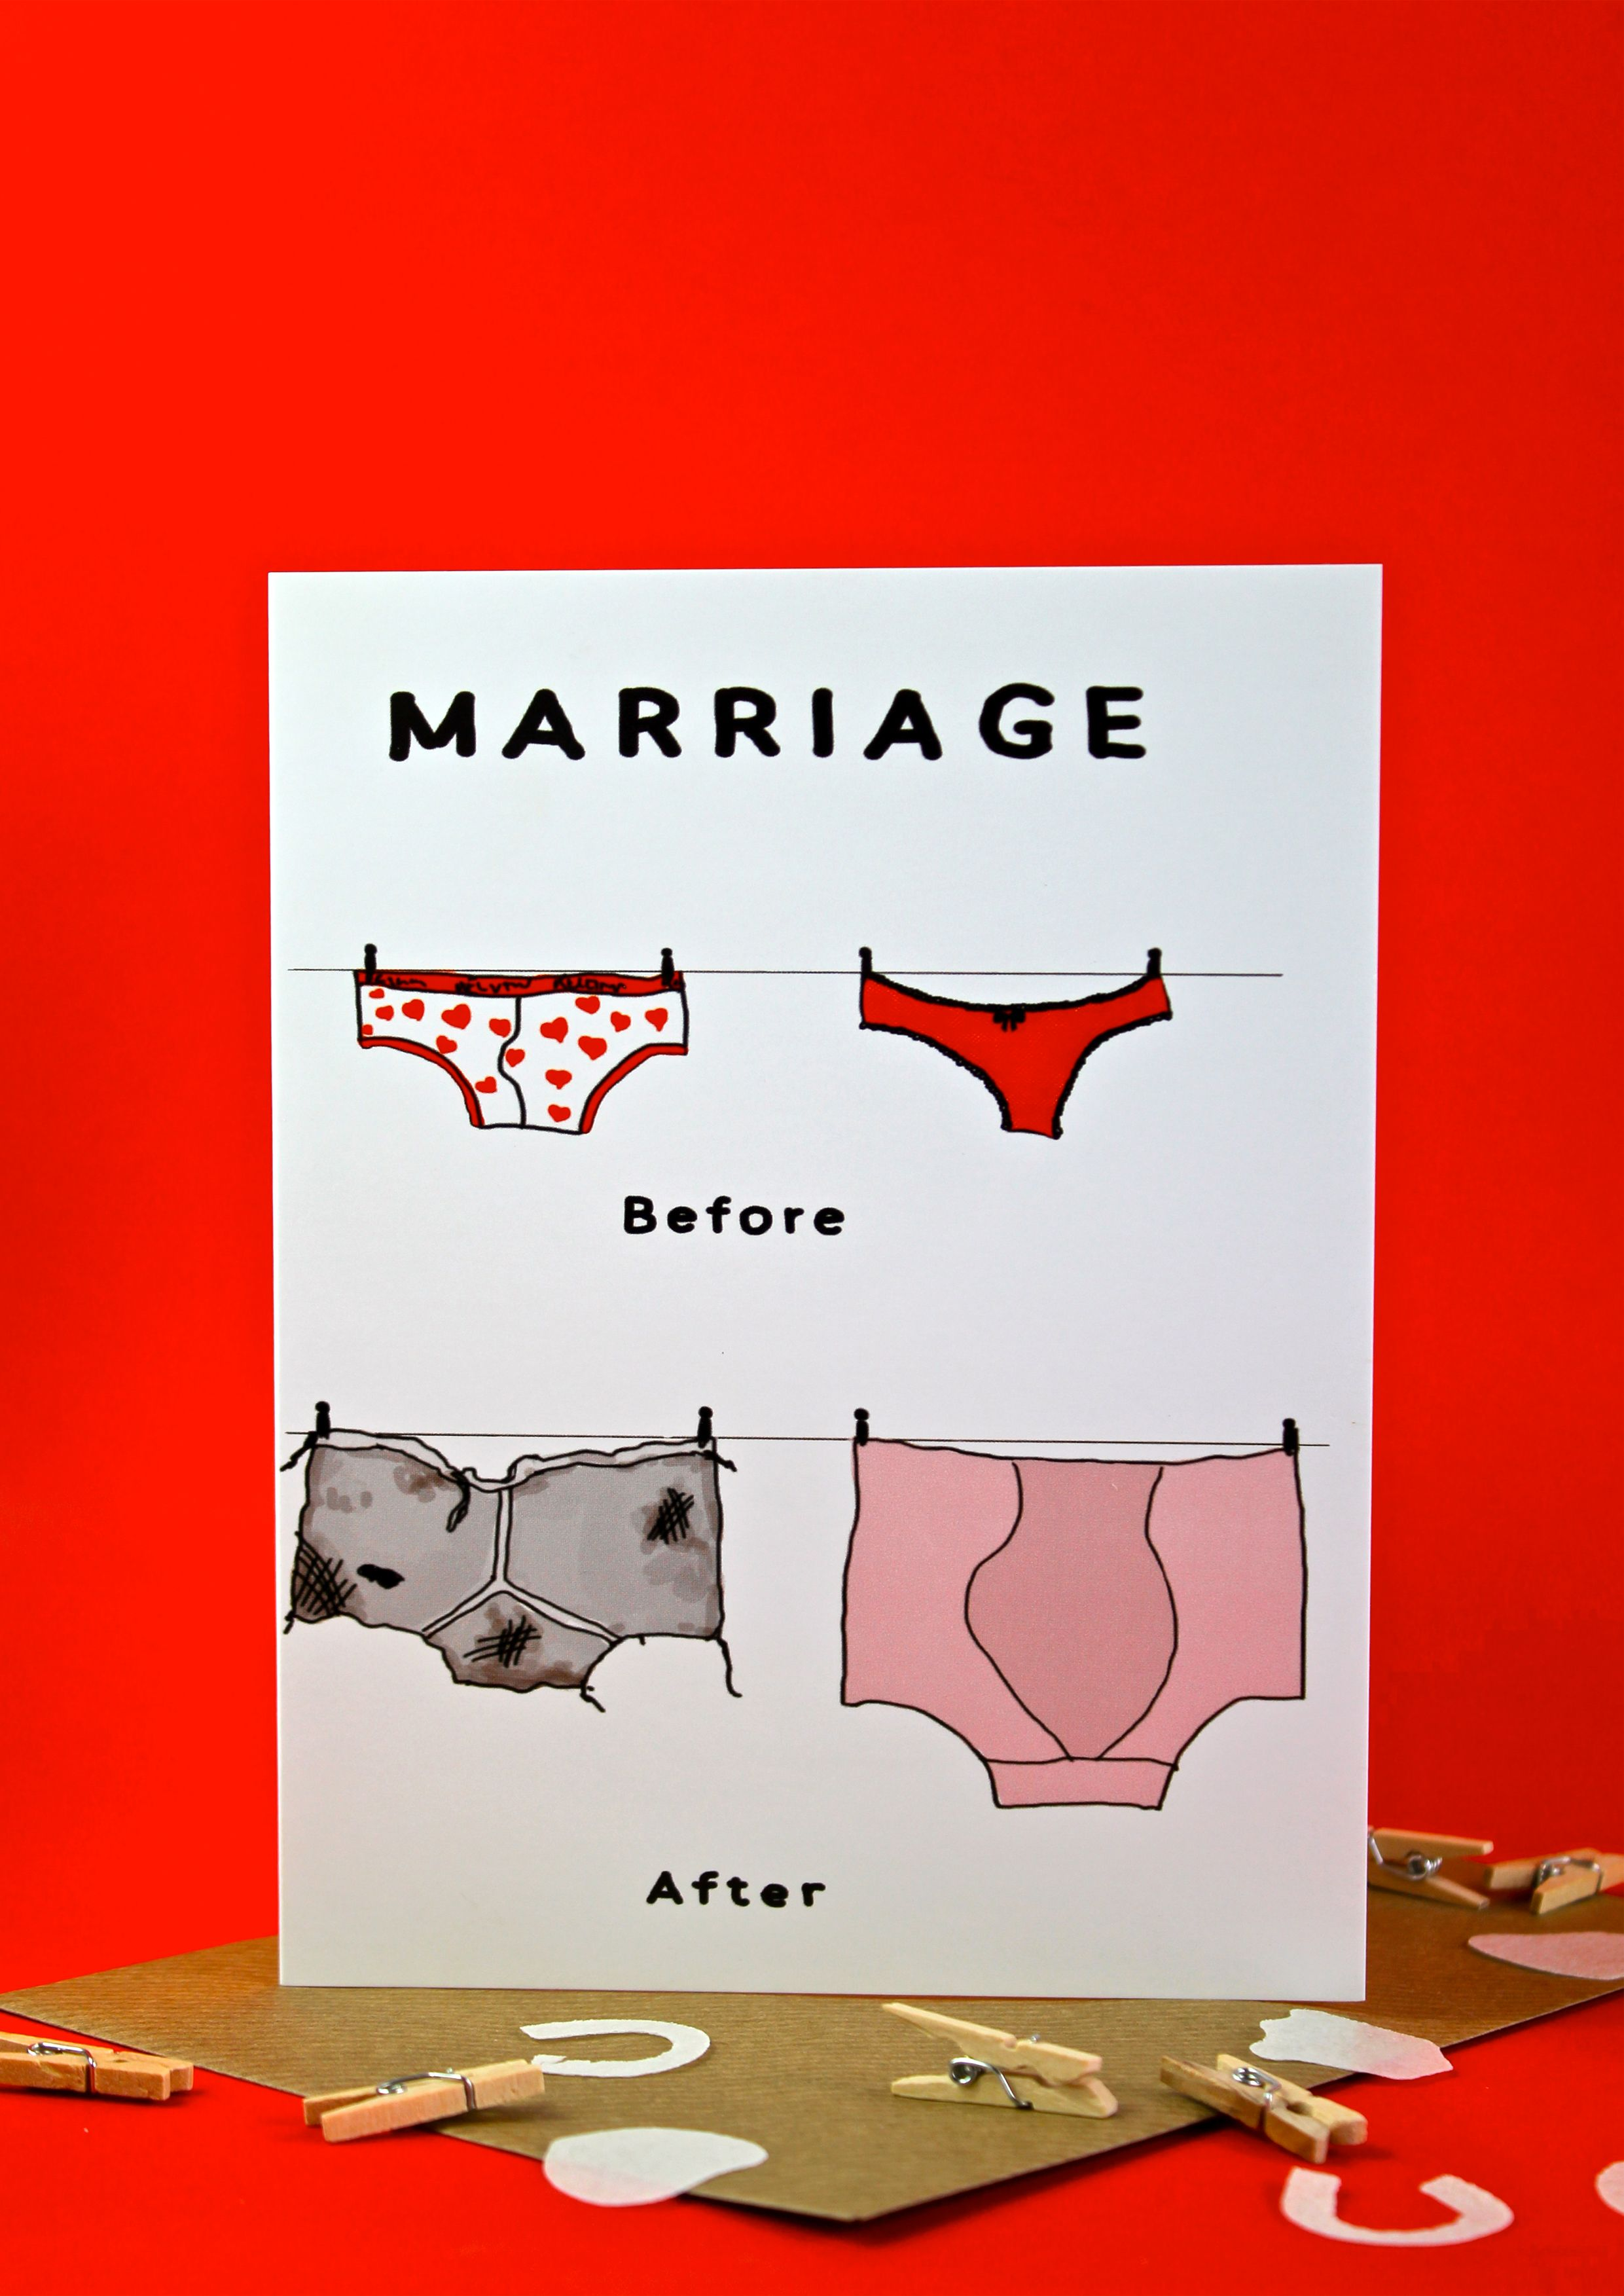 Marriage\' Greeting Card. a Funny and homorous Hand drawn Wedding or ...